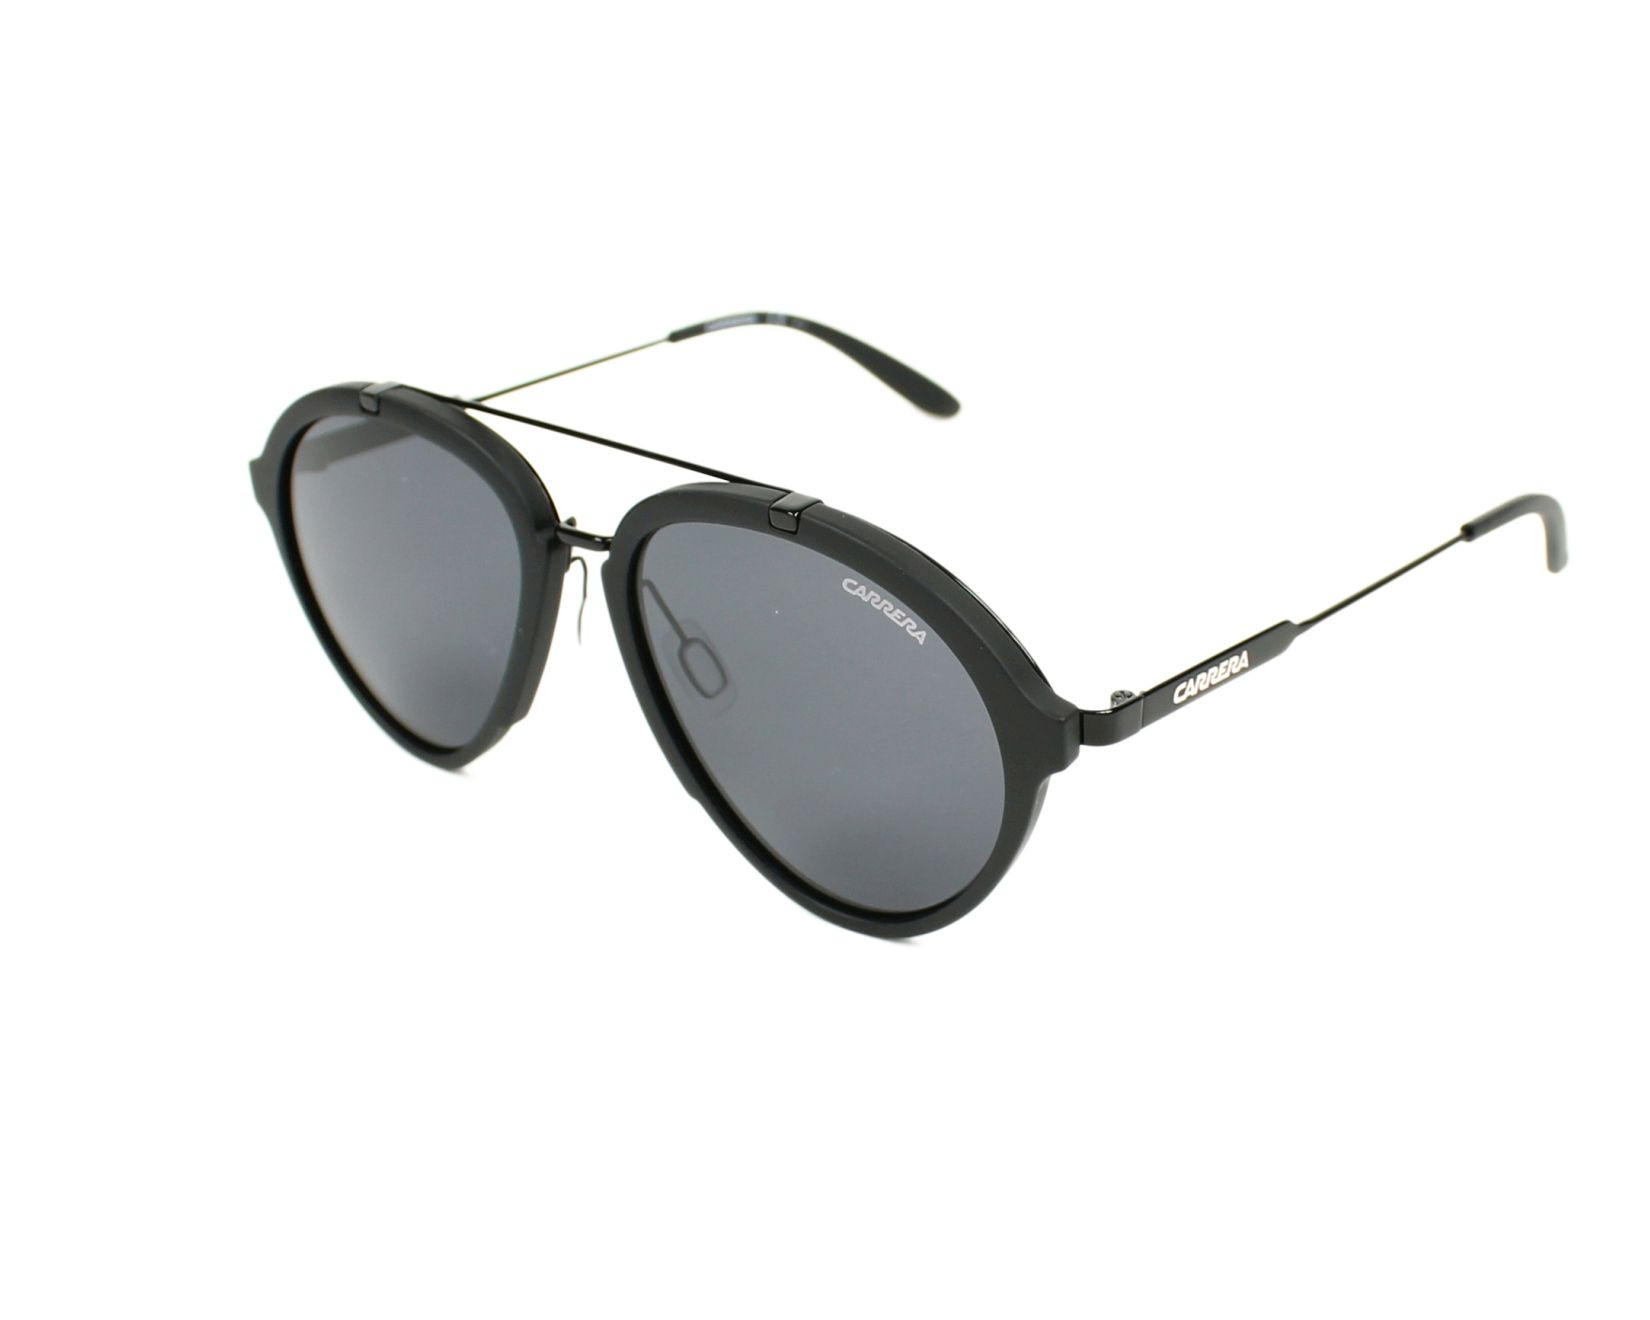 69ccffcbb1 thumbnail Sunglasses Carrera Carrera-125-S GTN IR - Black profile view